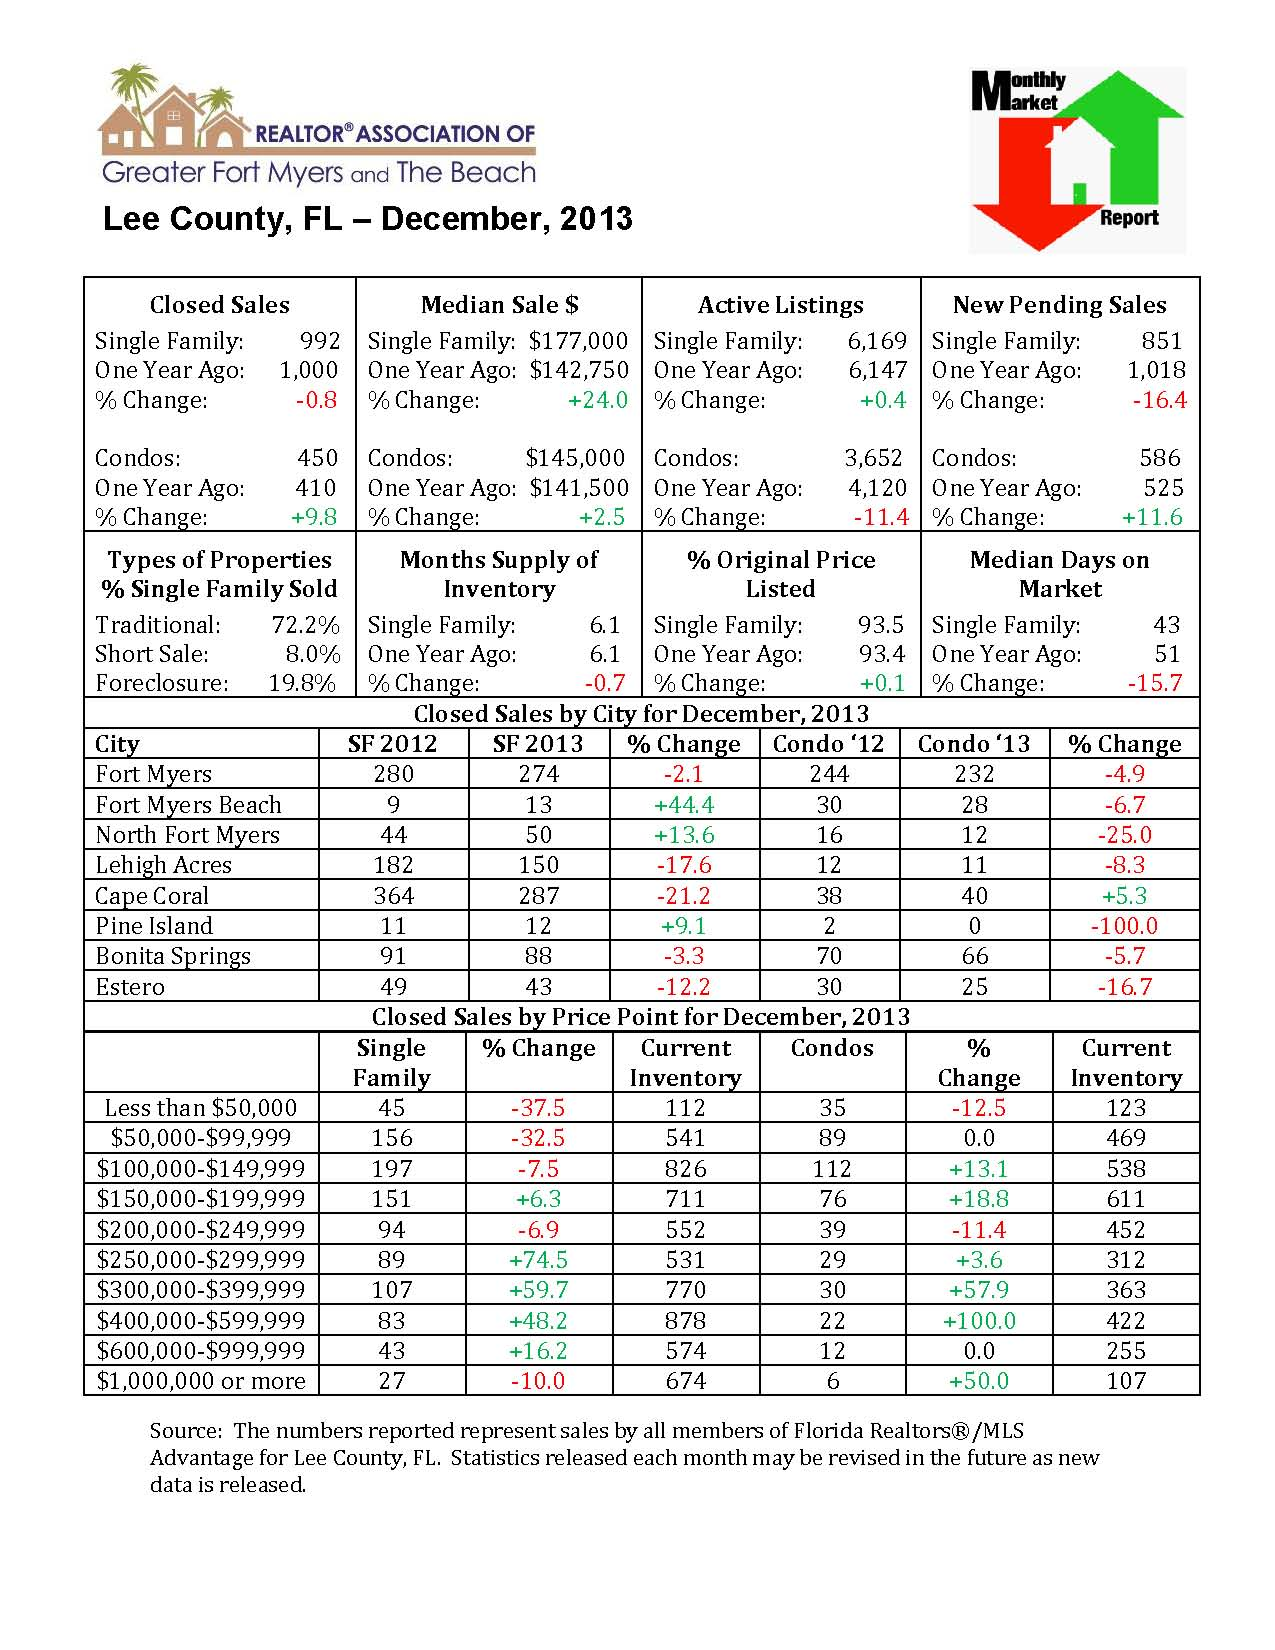 Lee County housing stats